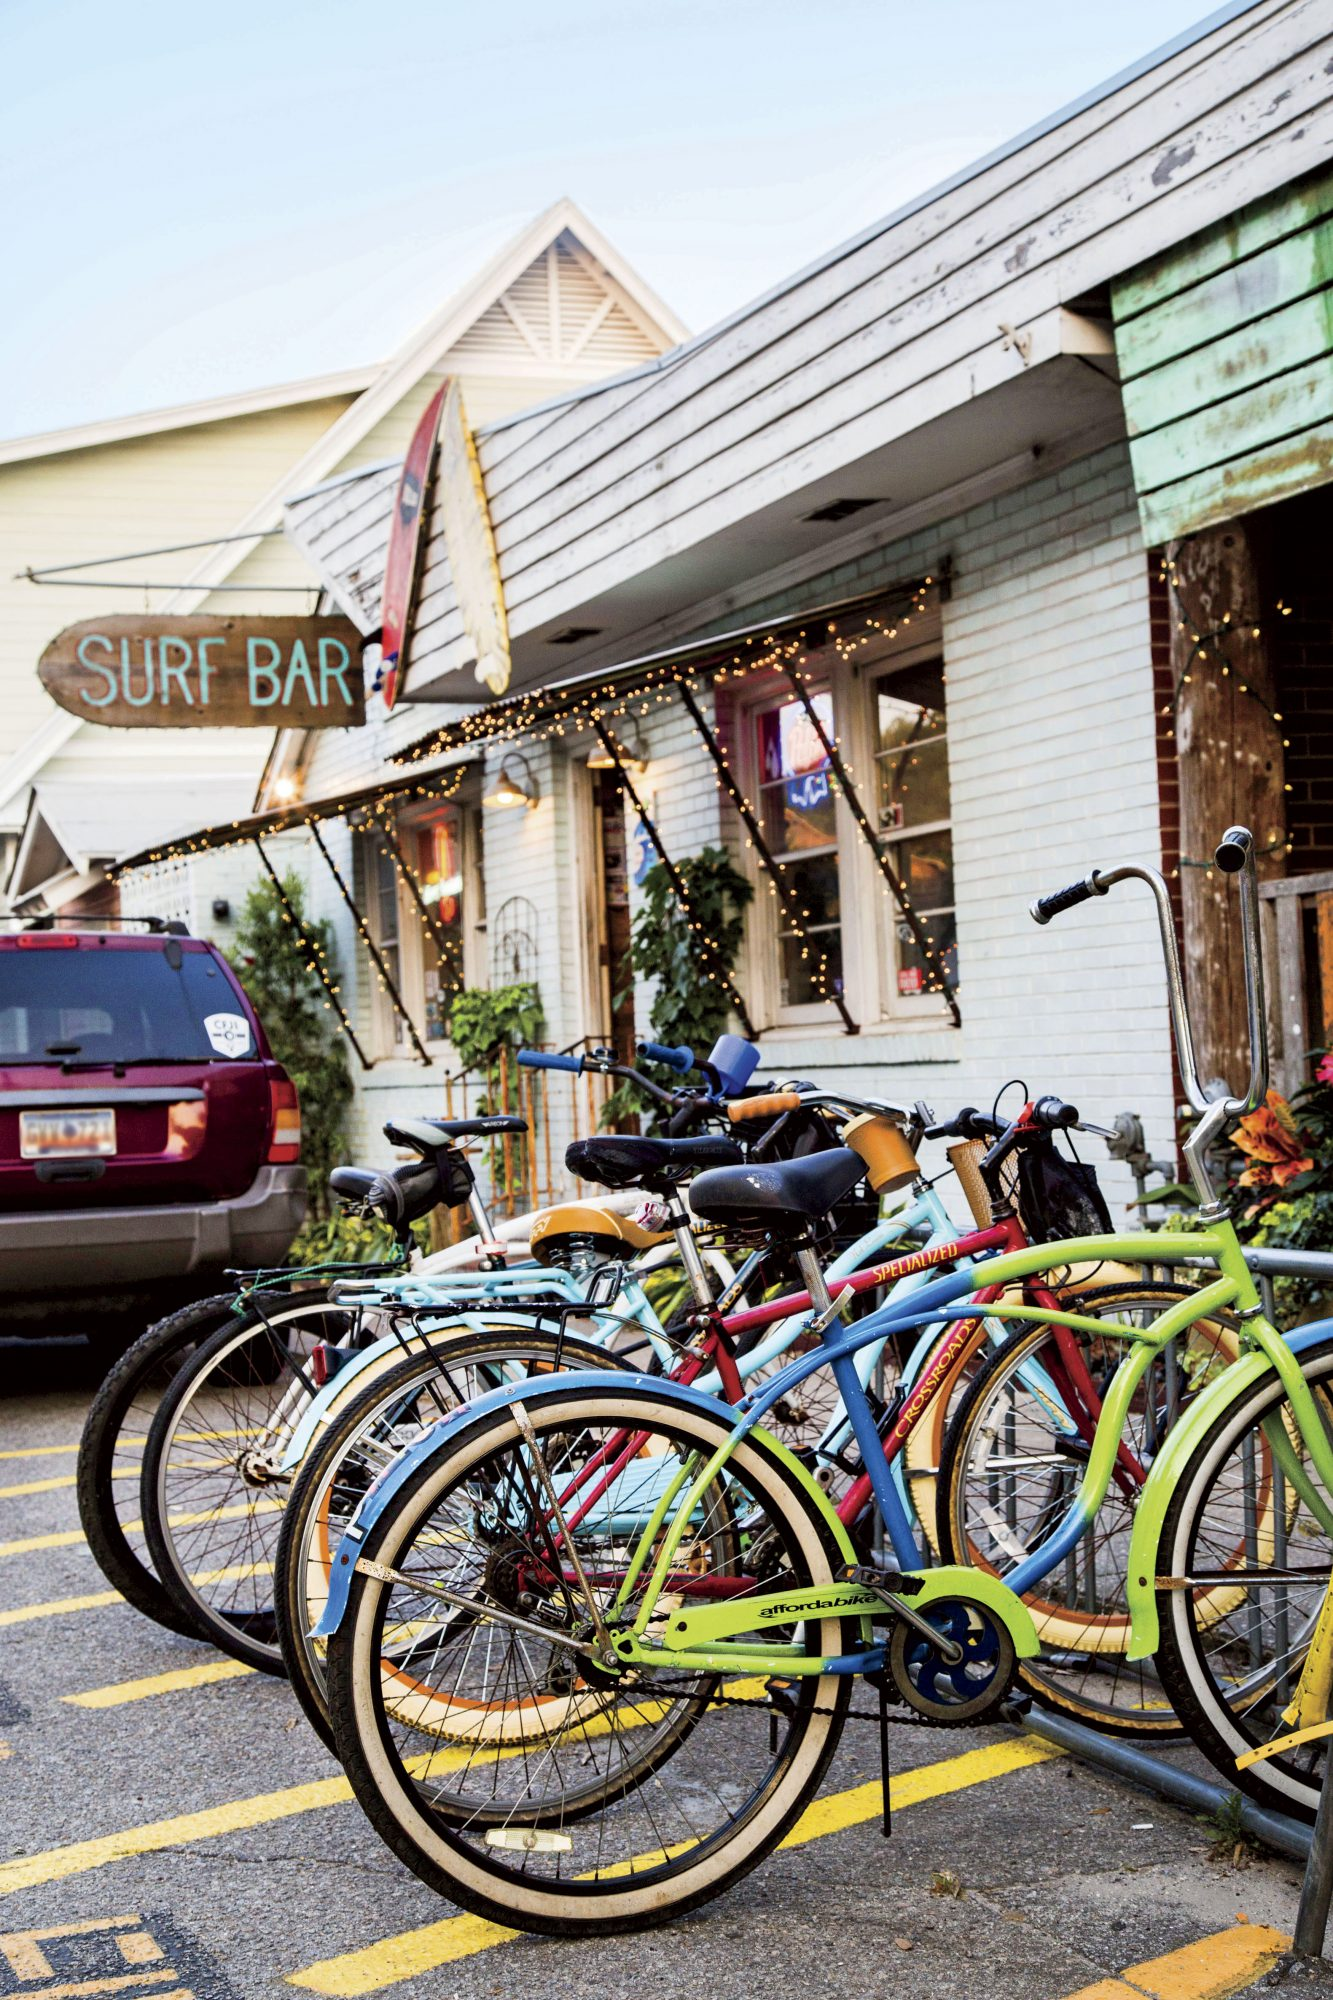 Surf Bar in Folly Beach, SC